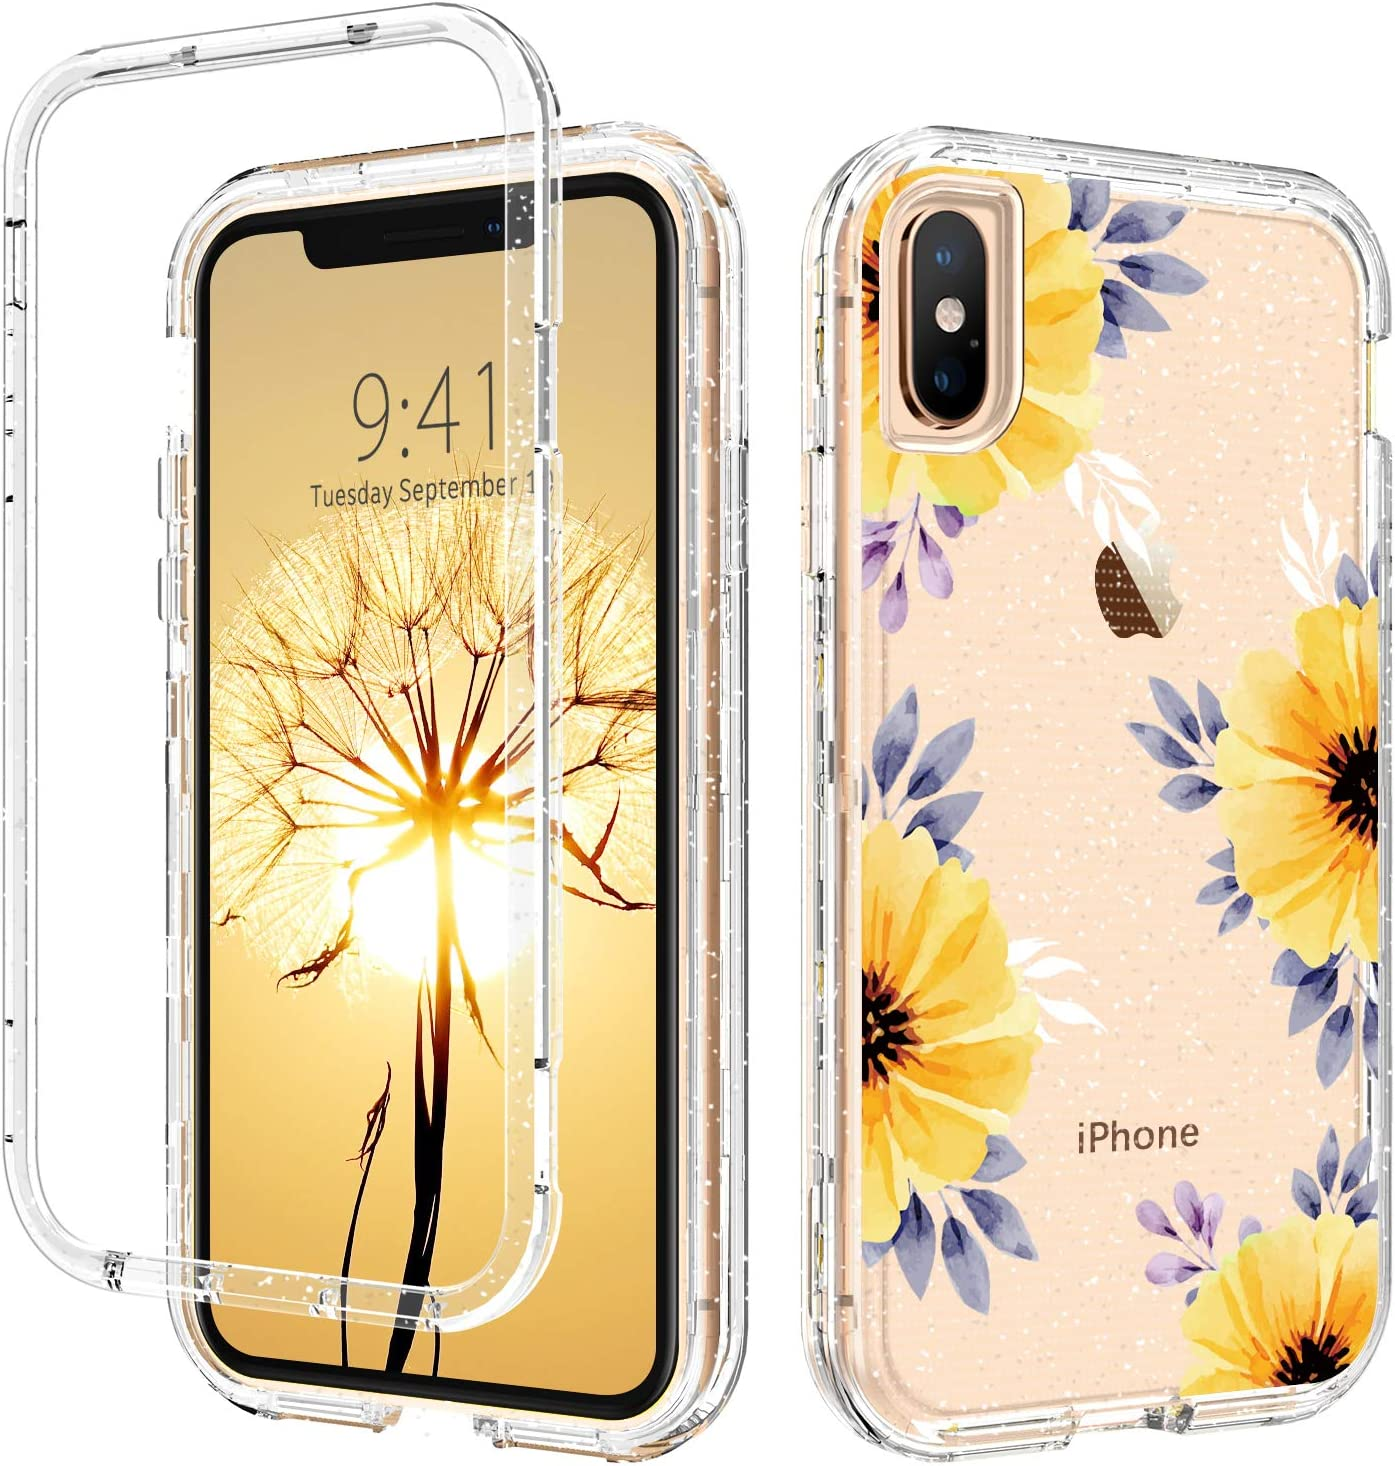 DUEDUE iPhone Xs Max Case, Glitter Camellia Flower 3 in 1 Shockproof Drop Protection Heavy Duty Hybrid Hard PC Transparent TPU Bumper Full Body Protective Case for iPhone Xs Max, Clear Flower